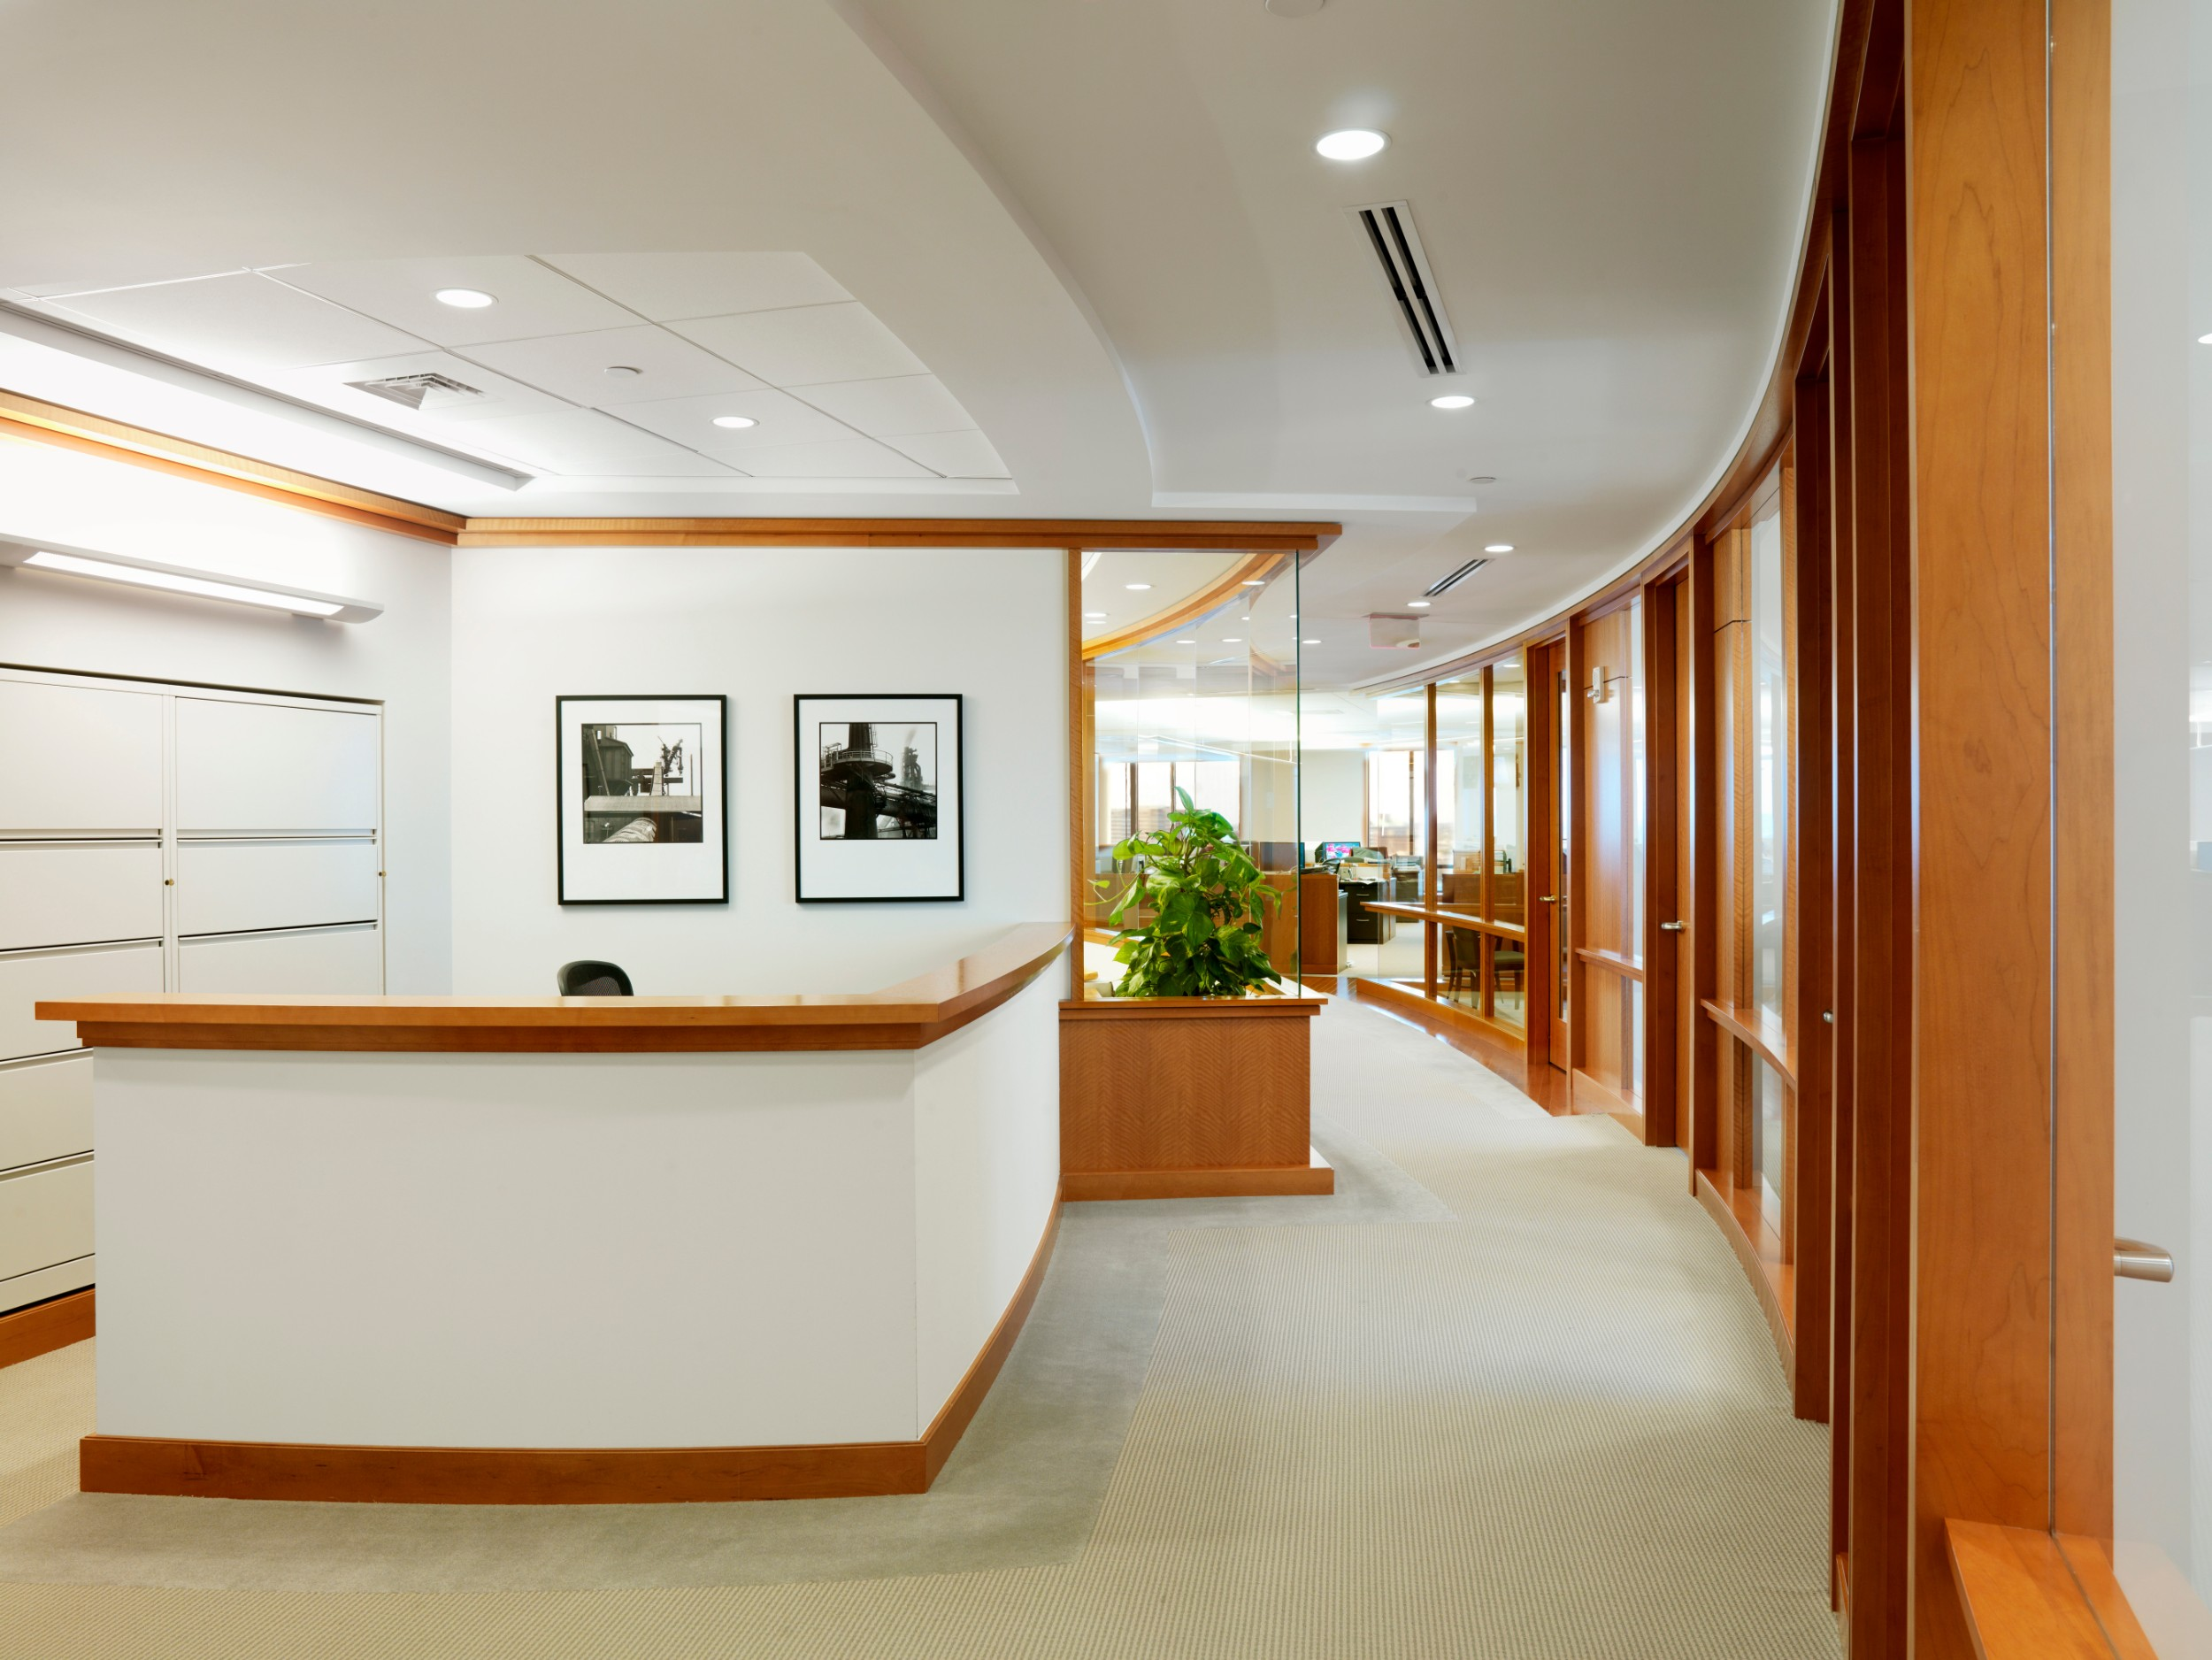 Corderman_Confidential_Office_Interior_Construction_Hallway_Side_Reception.jpg